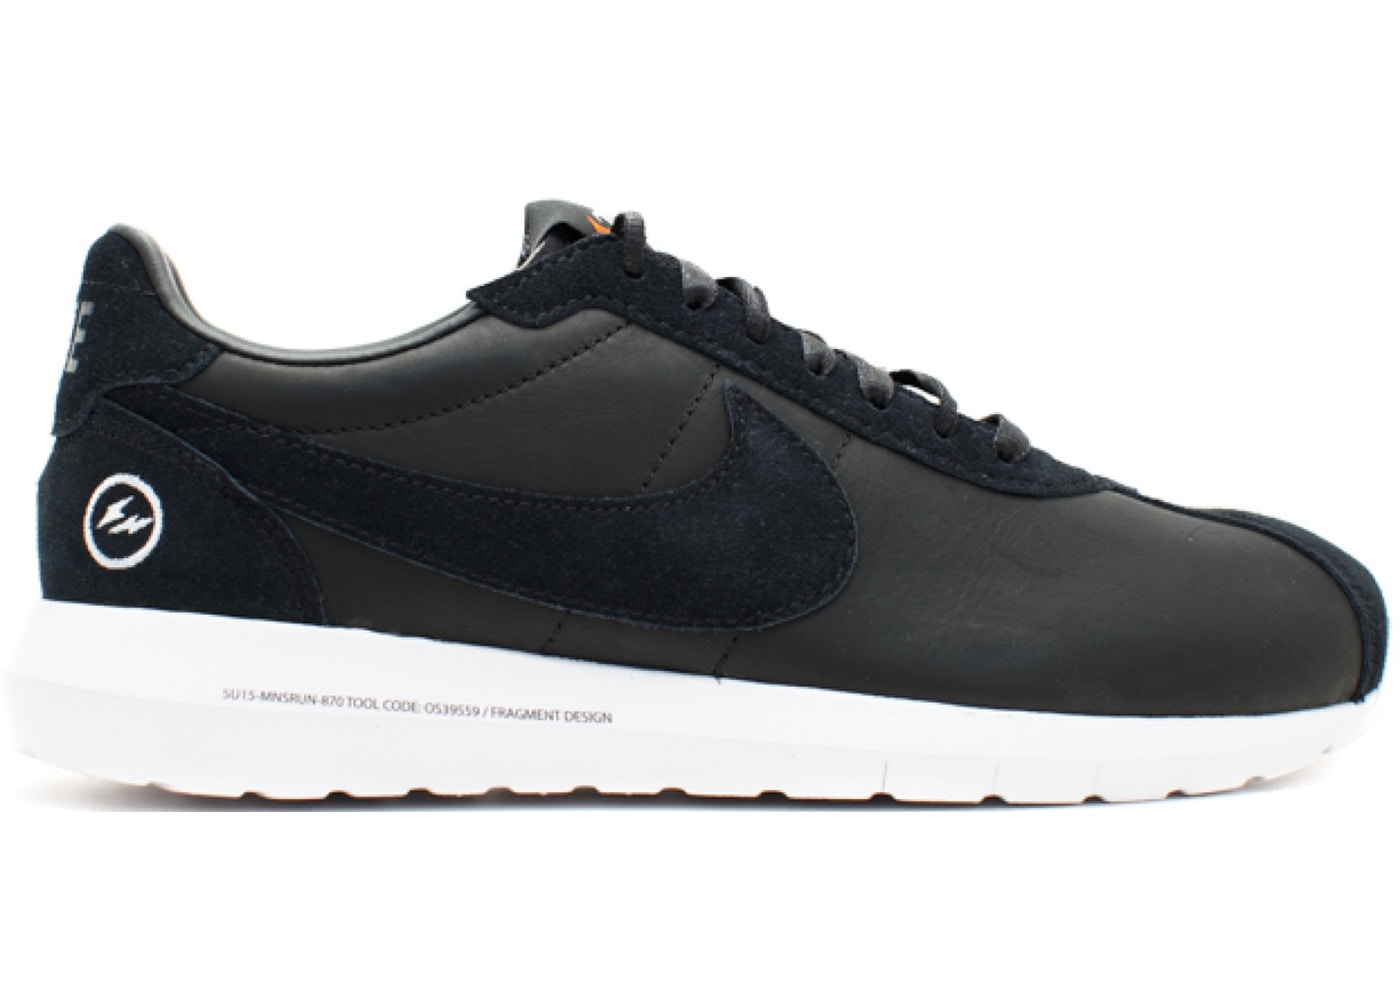 ナイキ NIKE ラン スニーカー 【 ROSHE RUN LD1000 FRAGMENT BLACK BLACKWHITE 】 メンズ